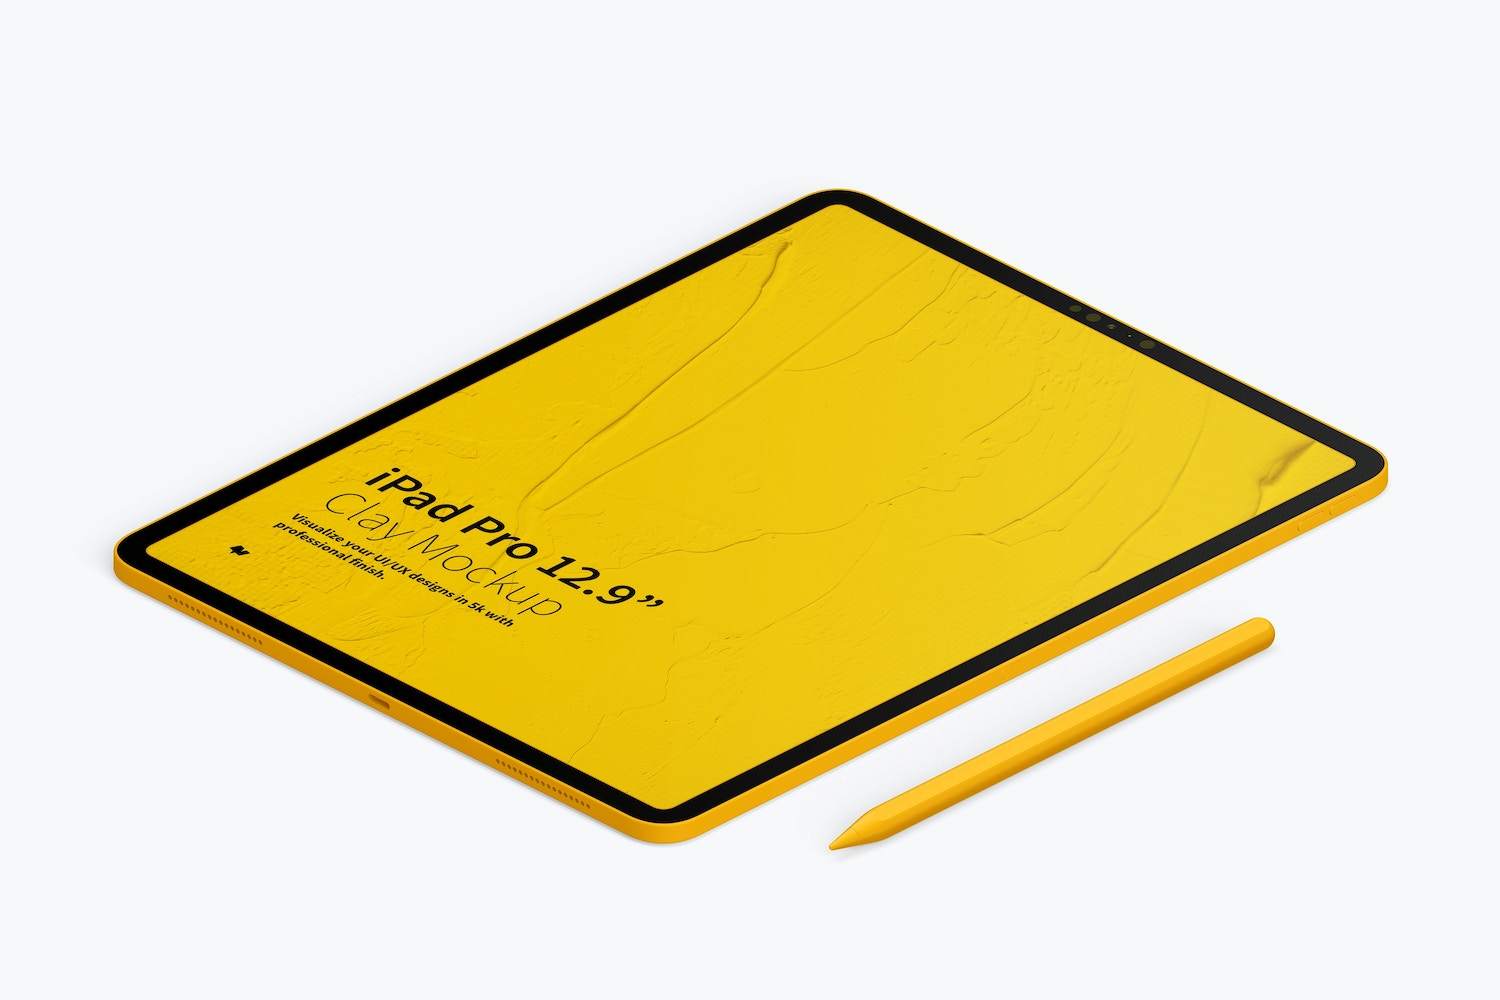 """Clay iPad Pro 12.9"""" Mockup, Isometric Right View (4) by Original Mockups on Original Mockups"""